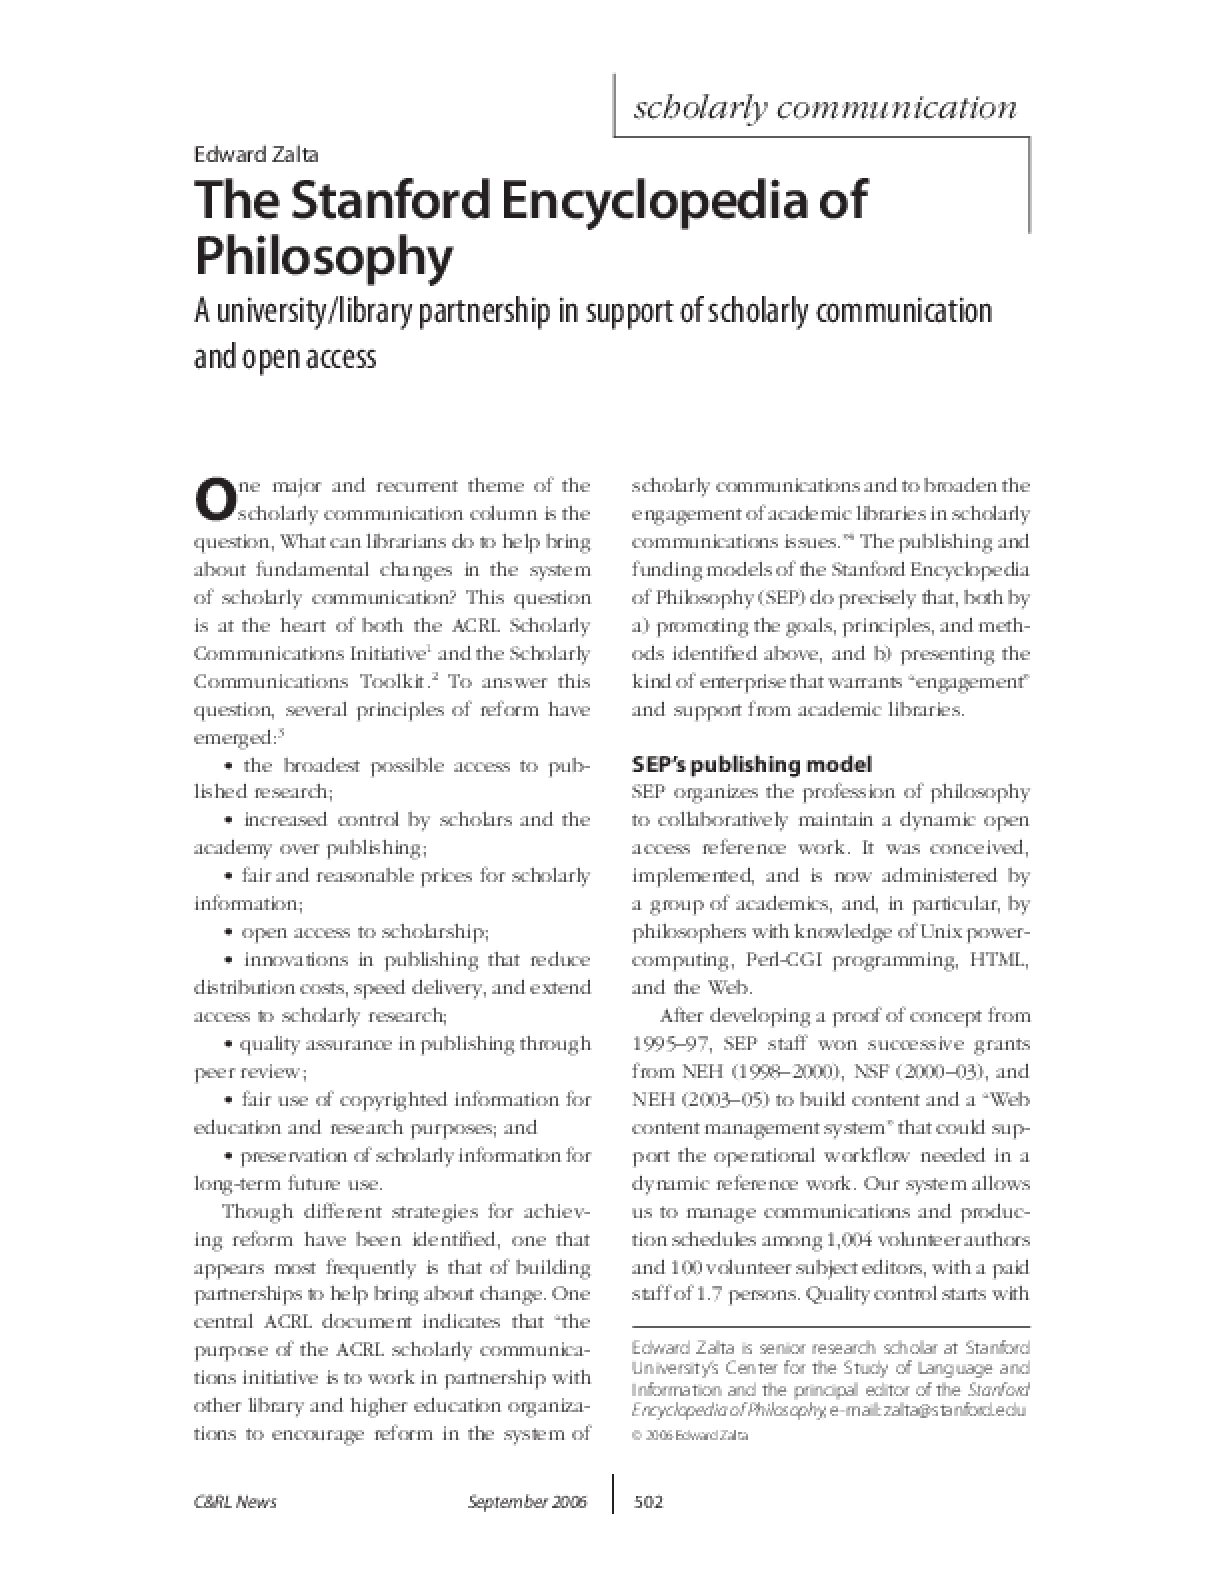 The Stanford Encyclopedia of Philosophy: A University/Library Partnership in Support of Scholarly Communications and Open Access